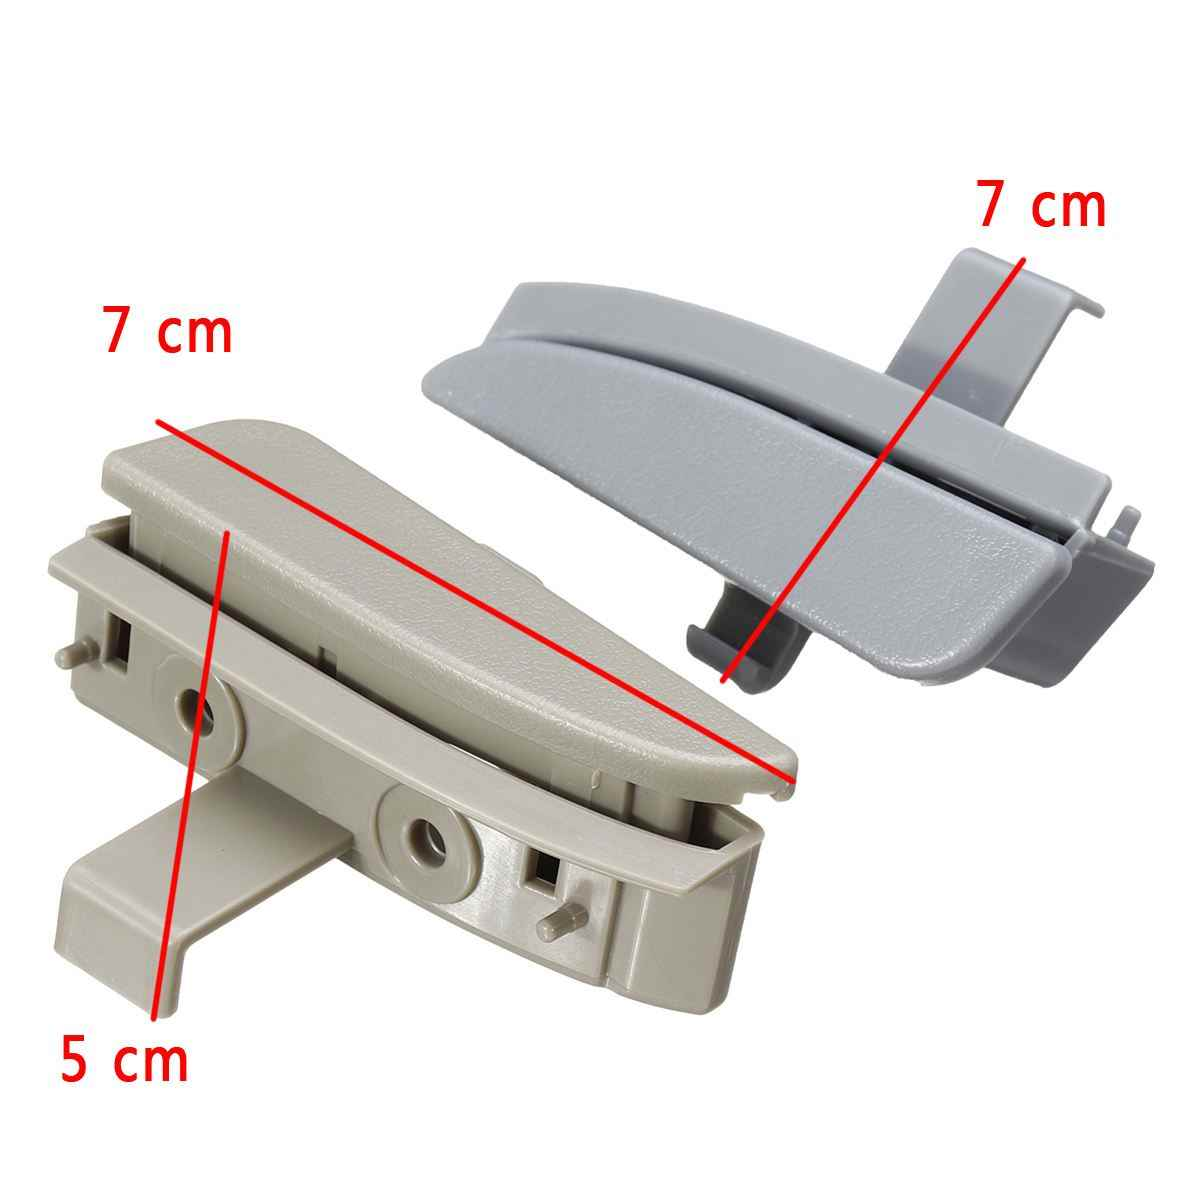 Replaces 58910AD030B0, 58910A-D030B0 APDTY 137027 Rear Gray Center Console Latch Fits 2005-2012 Toyota Tacoma